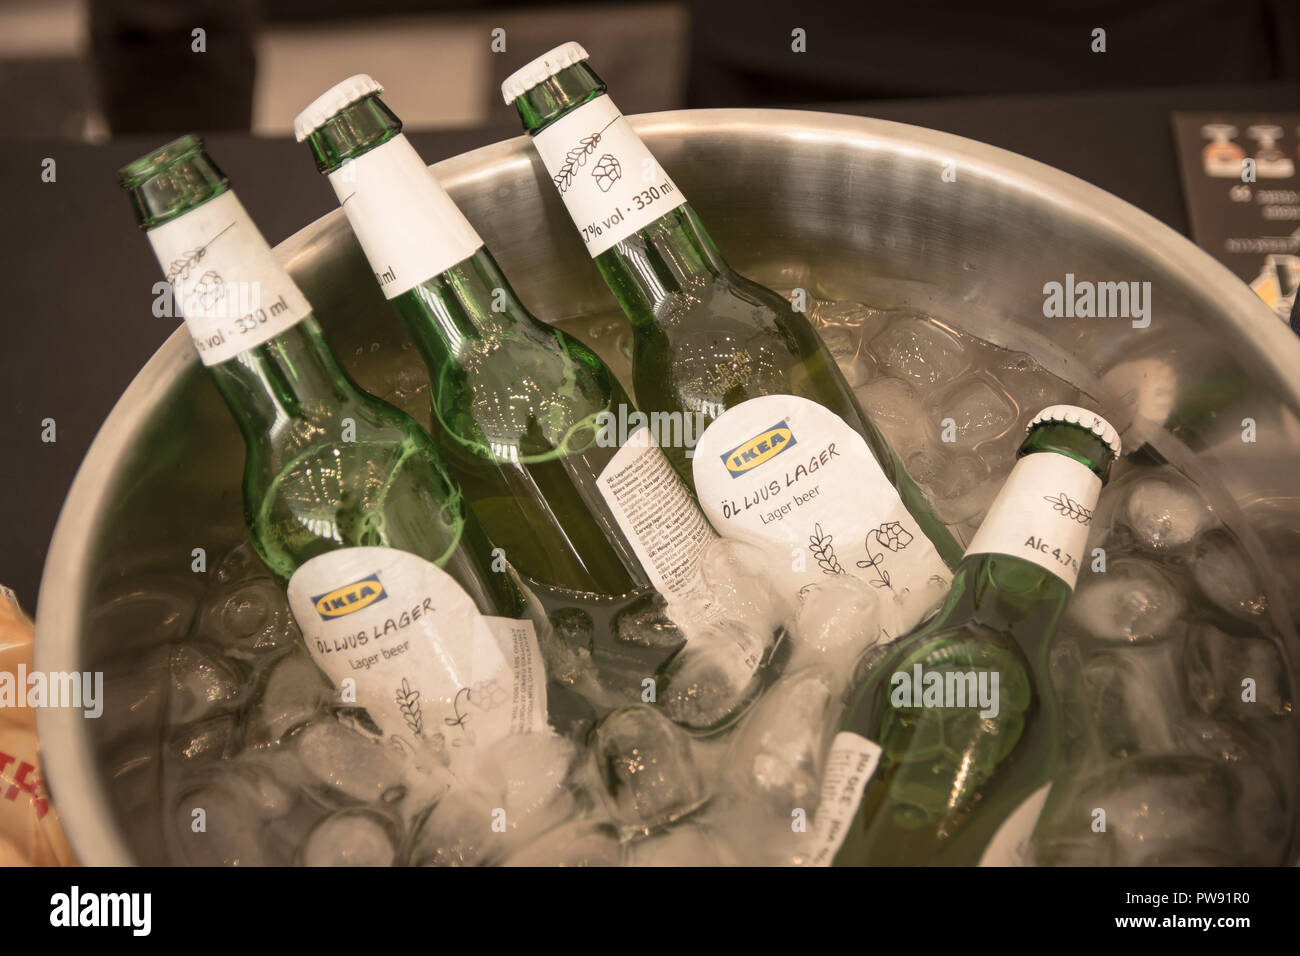 Athens, Greece. 13th Oct, 2018. Bottles of beer seen in a bowl of ice during the exhibition.The 5th Zythognosia Exhibition, people get a chance during the exhibition to taste multiple brews and premium beers from different brands and companies like Levante for Zante Lager, Asylum for Asylum saison, Mikonu for Mikonu Pale Ale, Deals for Fischer, Samichlaus and Cava di patsi for Flaros Session Ale in Zappeion Megaron in Athens. Credit: Nikolas Joao Kokovlis/SOPA Images/ZUMA Wire/Alamy Live News - Stock Image